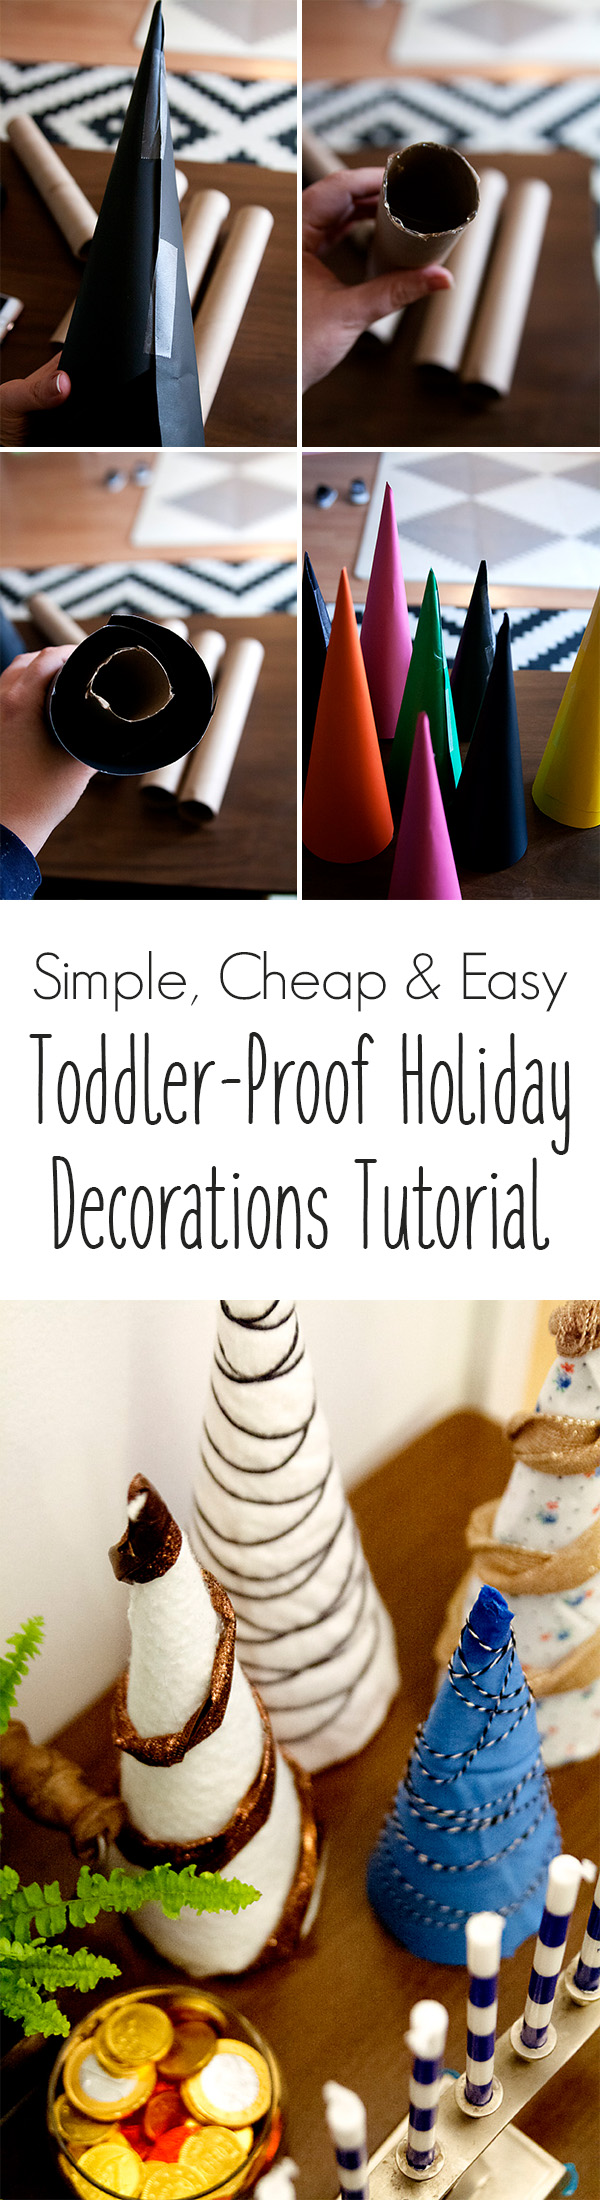 Toddler-Proof Holiday Decorations Tutorial